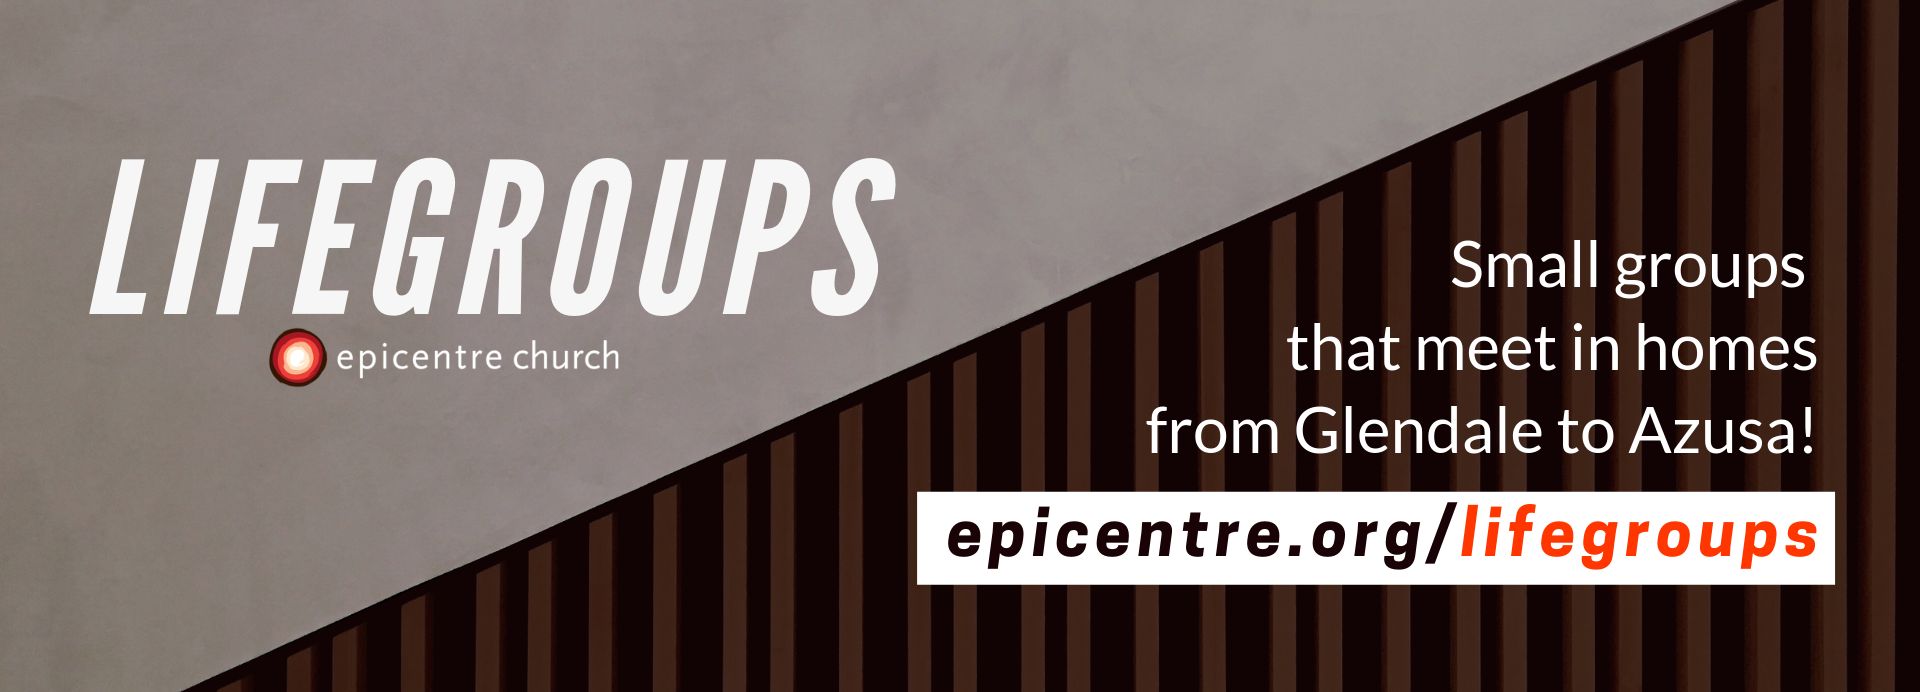 Epicentre Lifegroups_1920x692.png